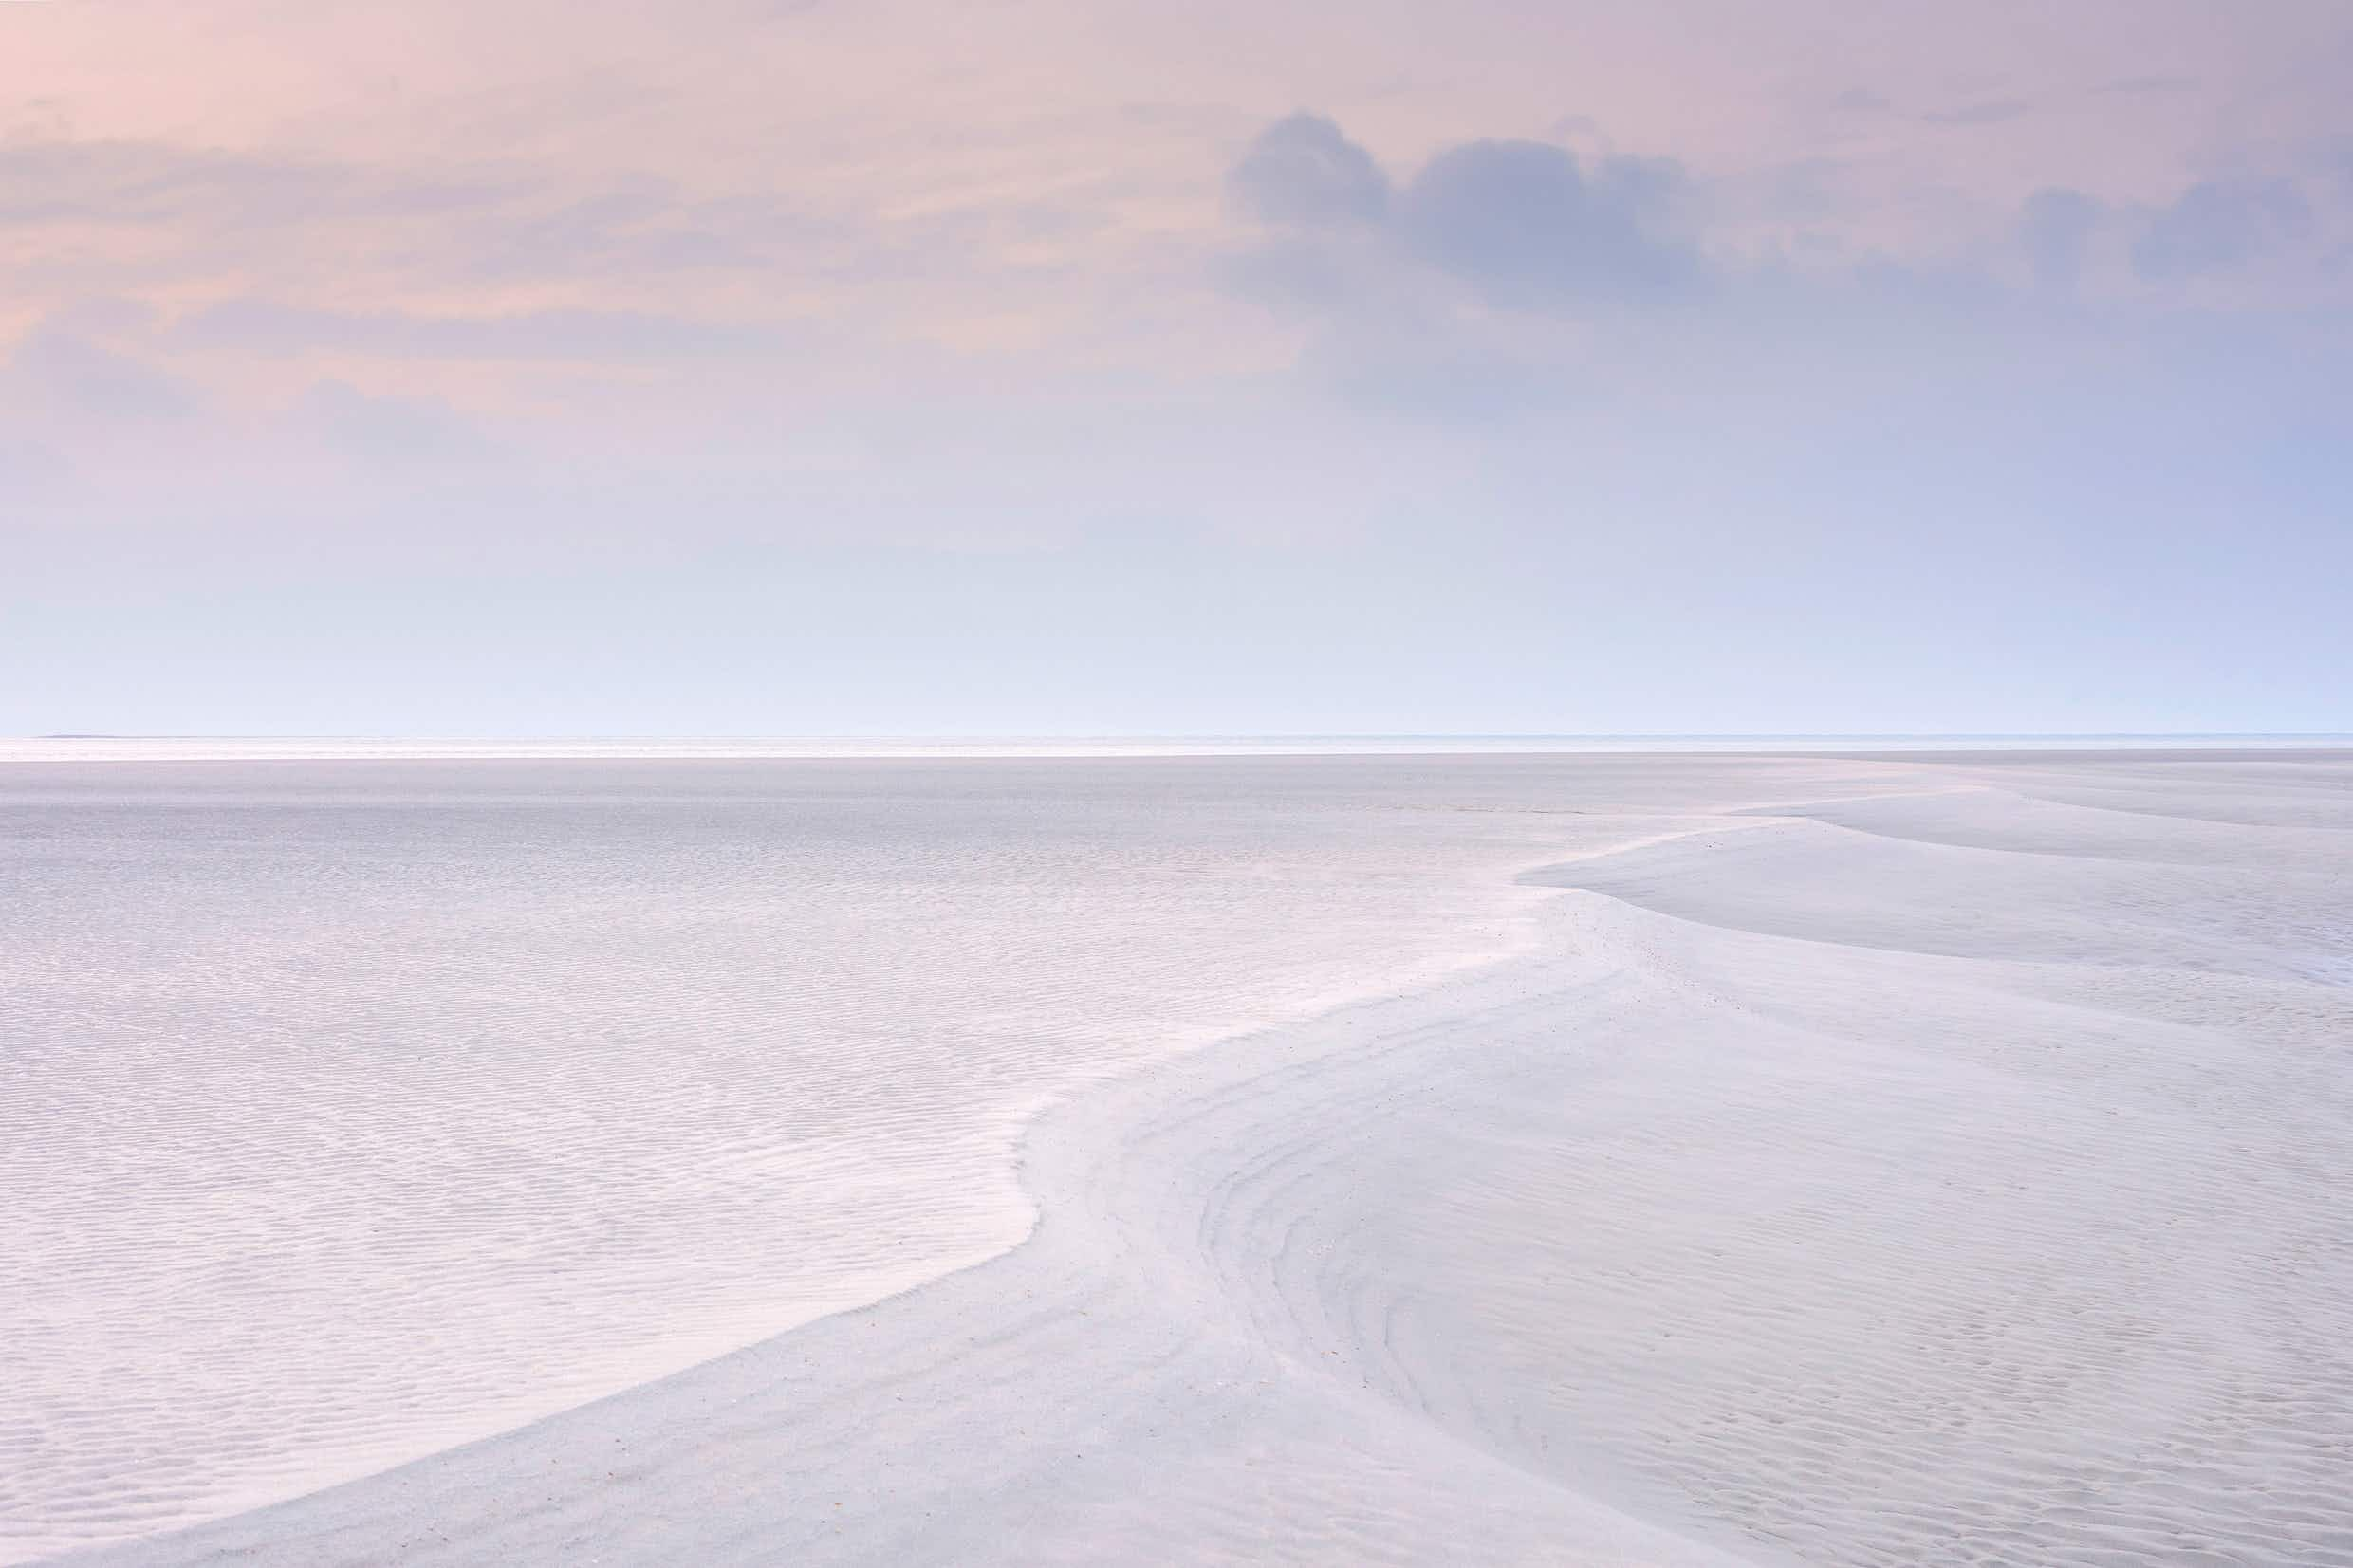 See the best of the UK's landscapes in these award-winning images